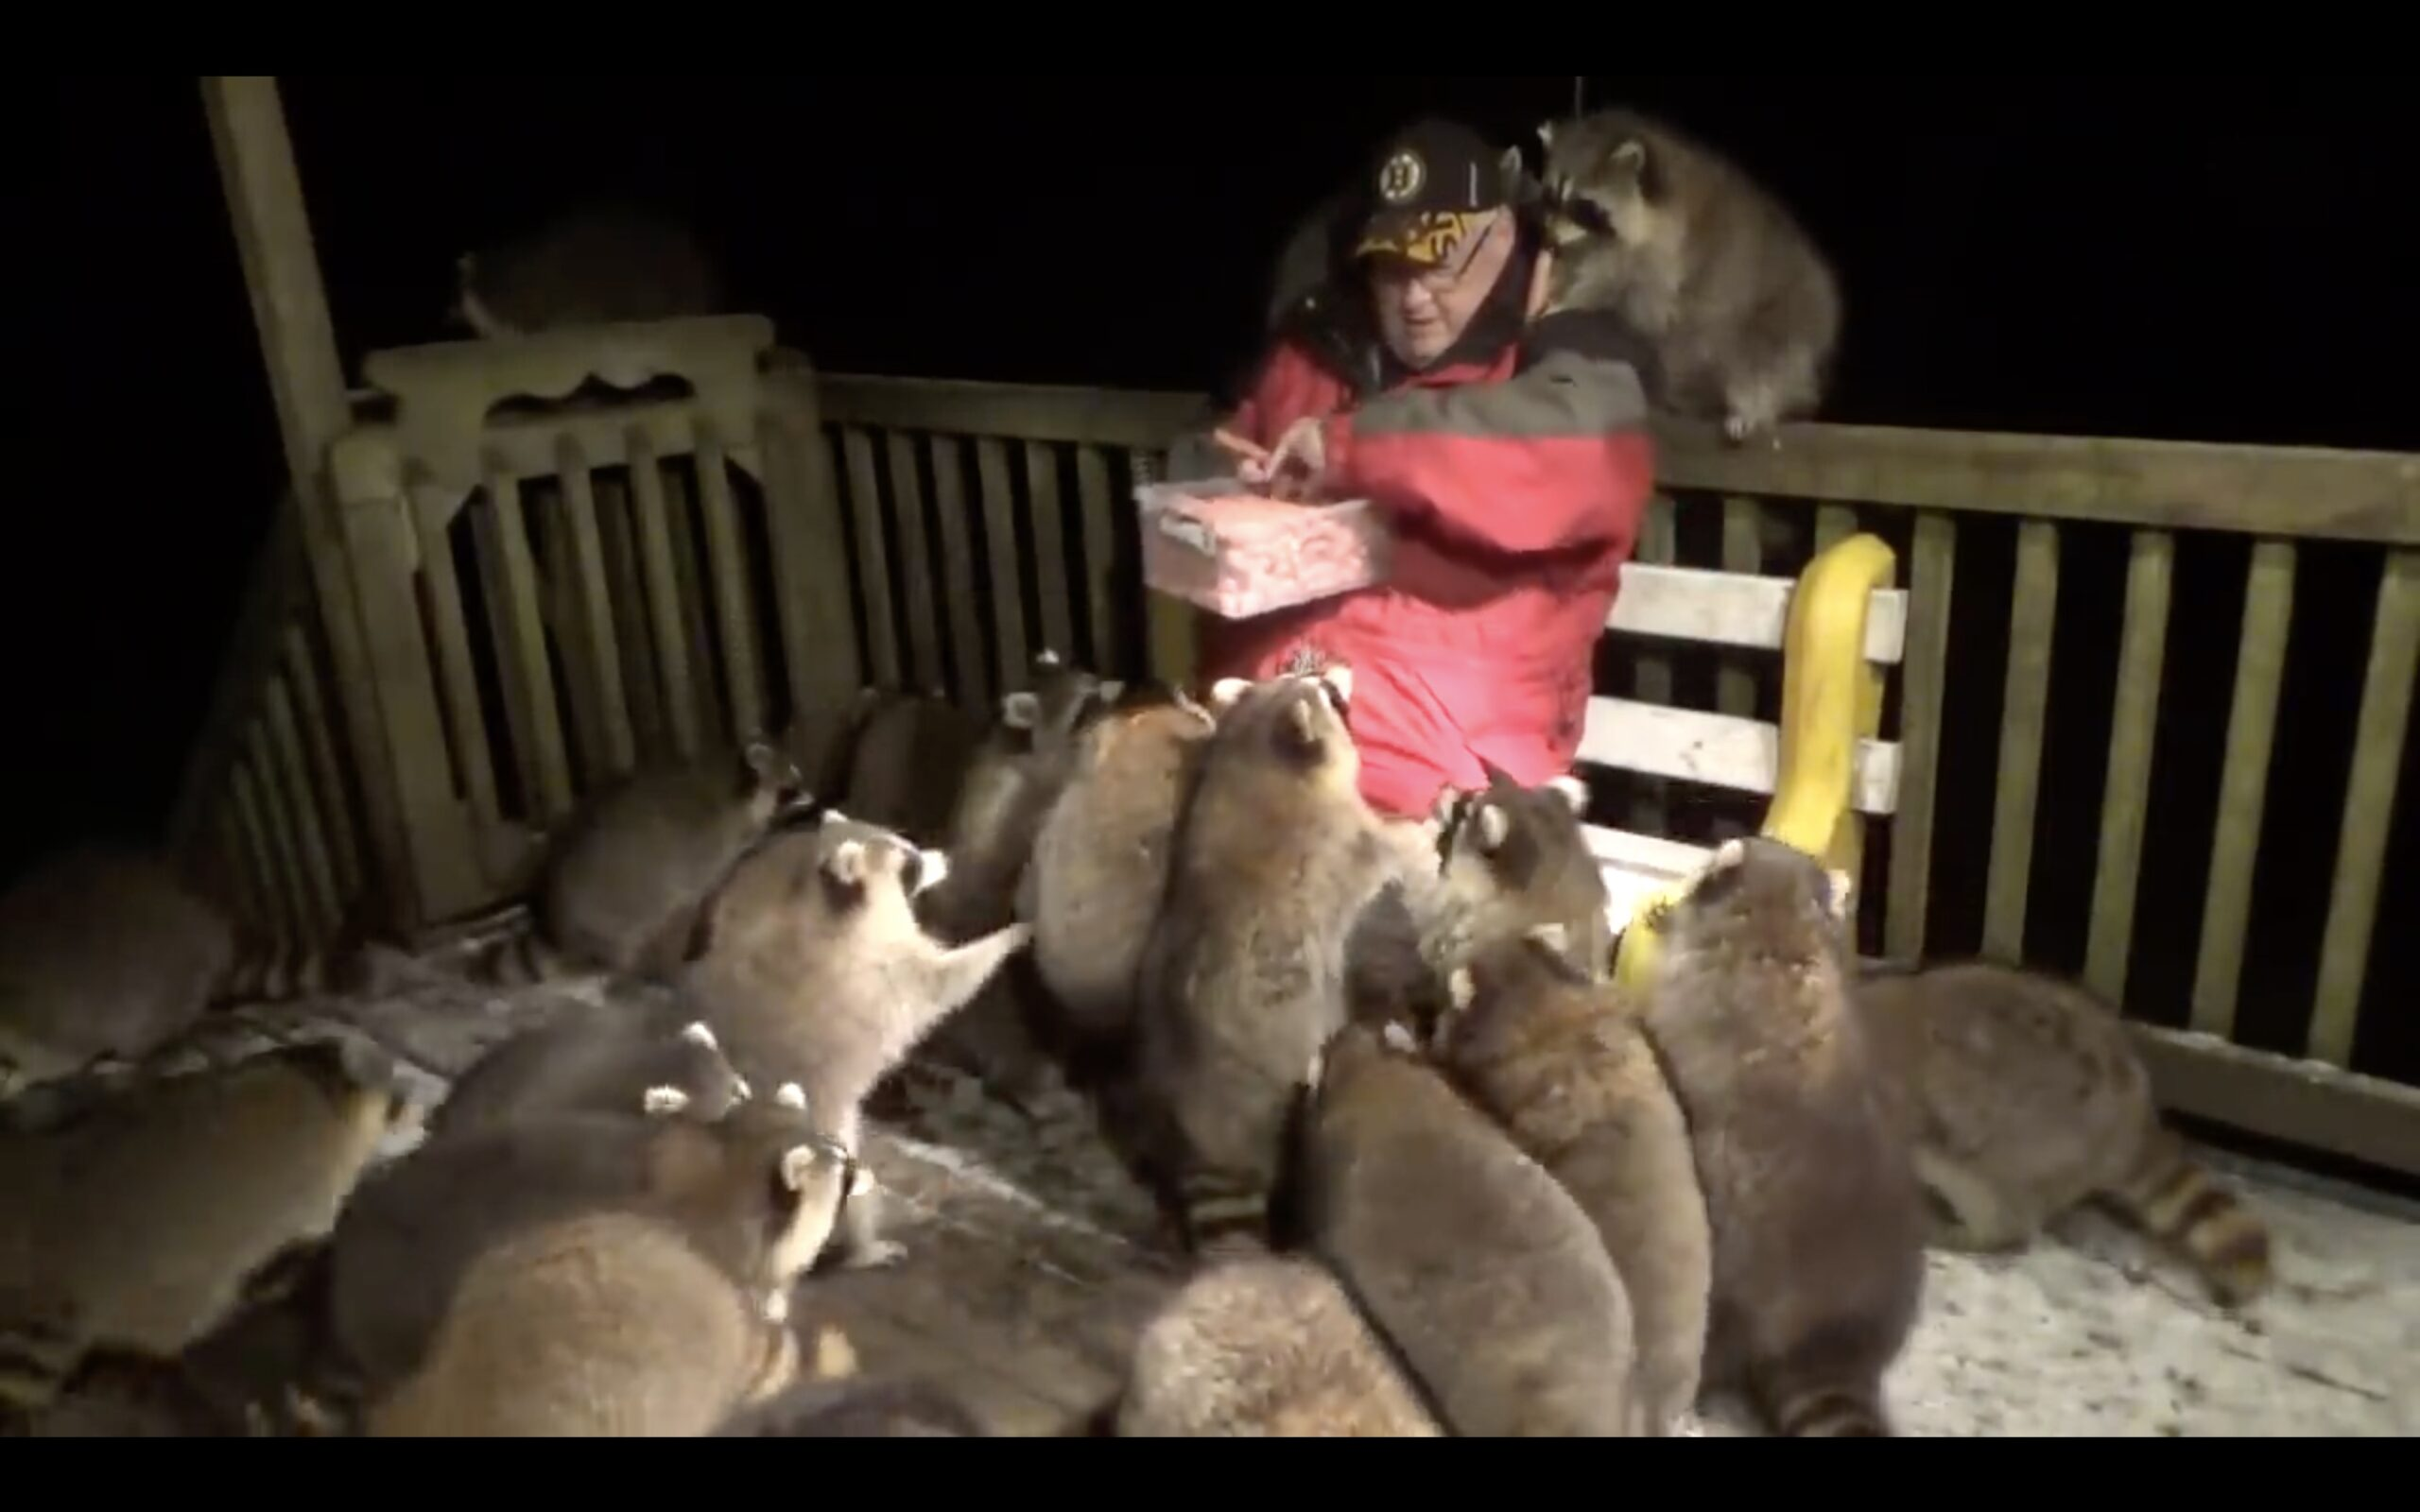 Raccoons in a feeding frenzy crowd around man handing out hot dogs